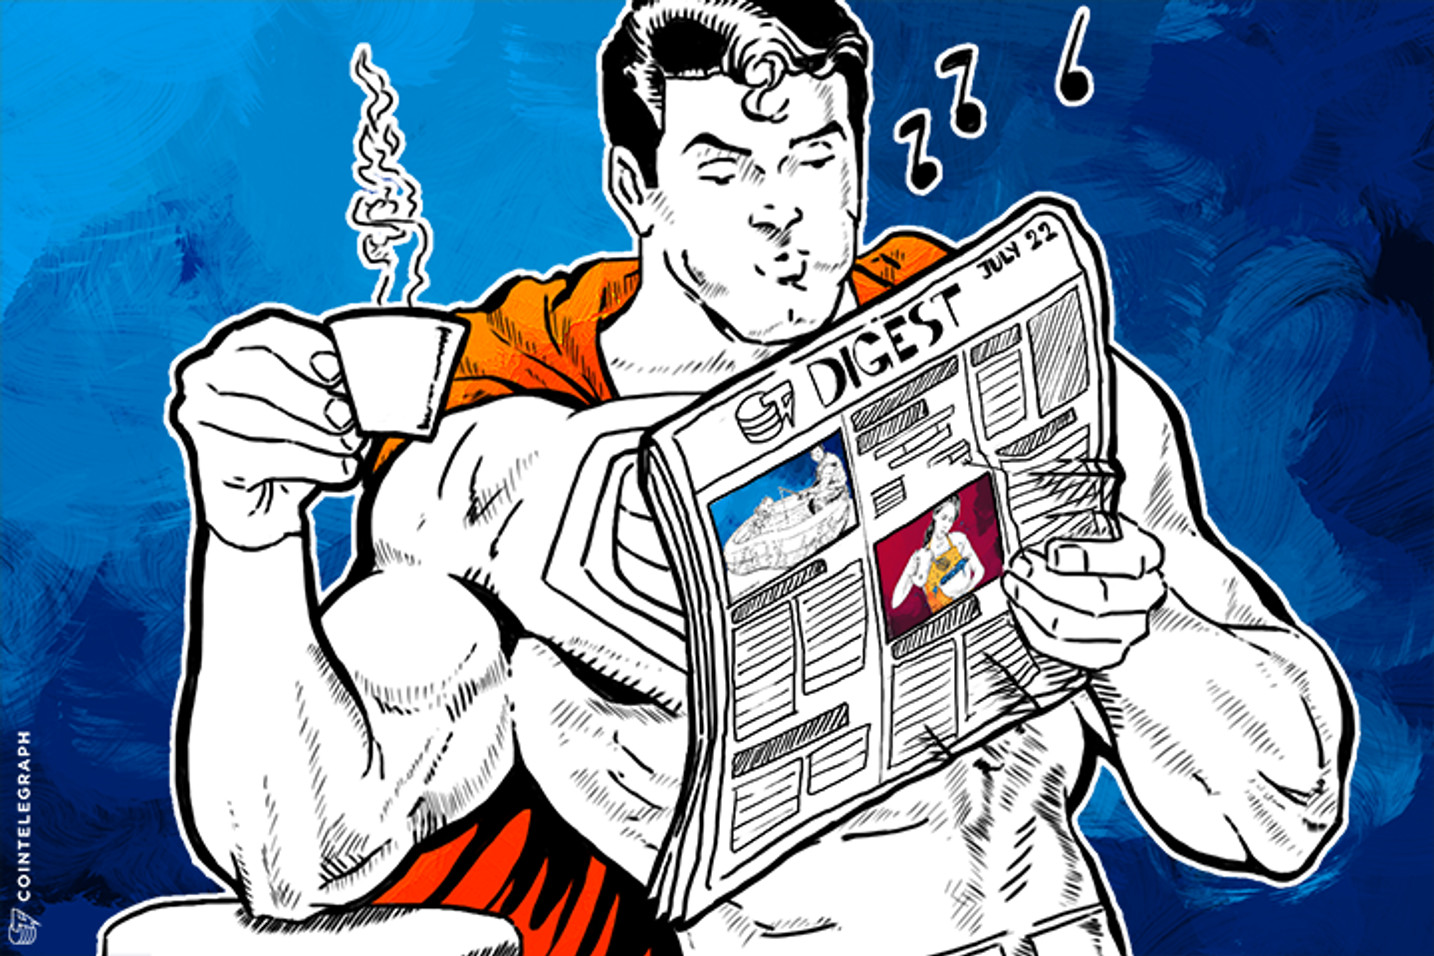 JUL 22 DIGEST: Coin.mx Operators Arrested for Running Illegal Bitcoin Exchange; itBit Launches OCT Desk